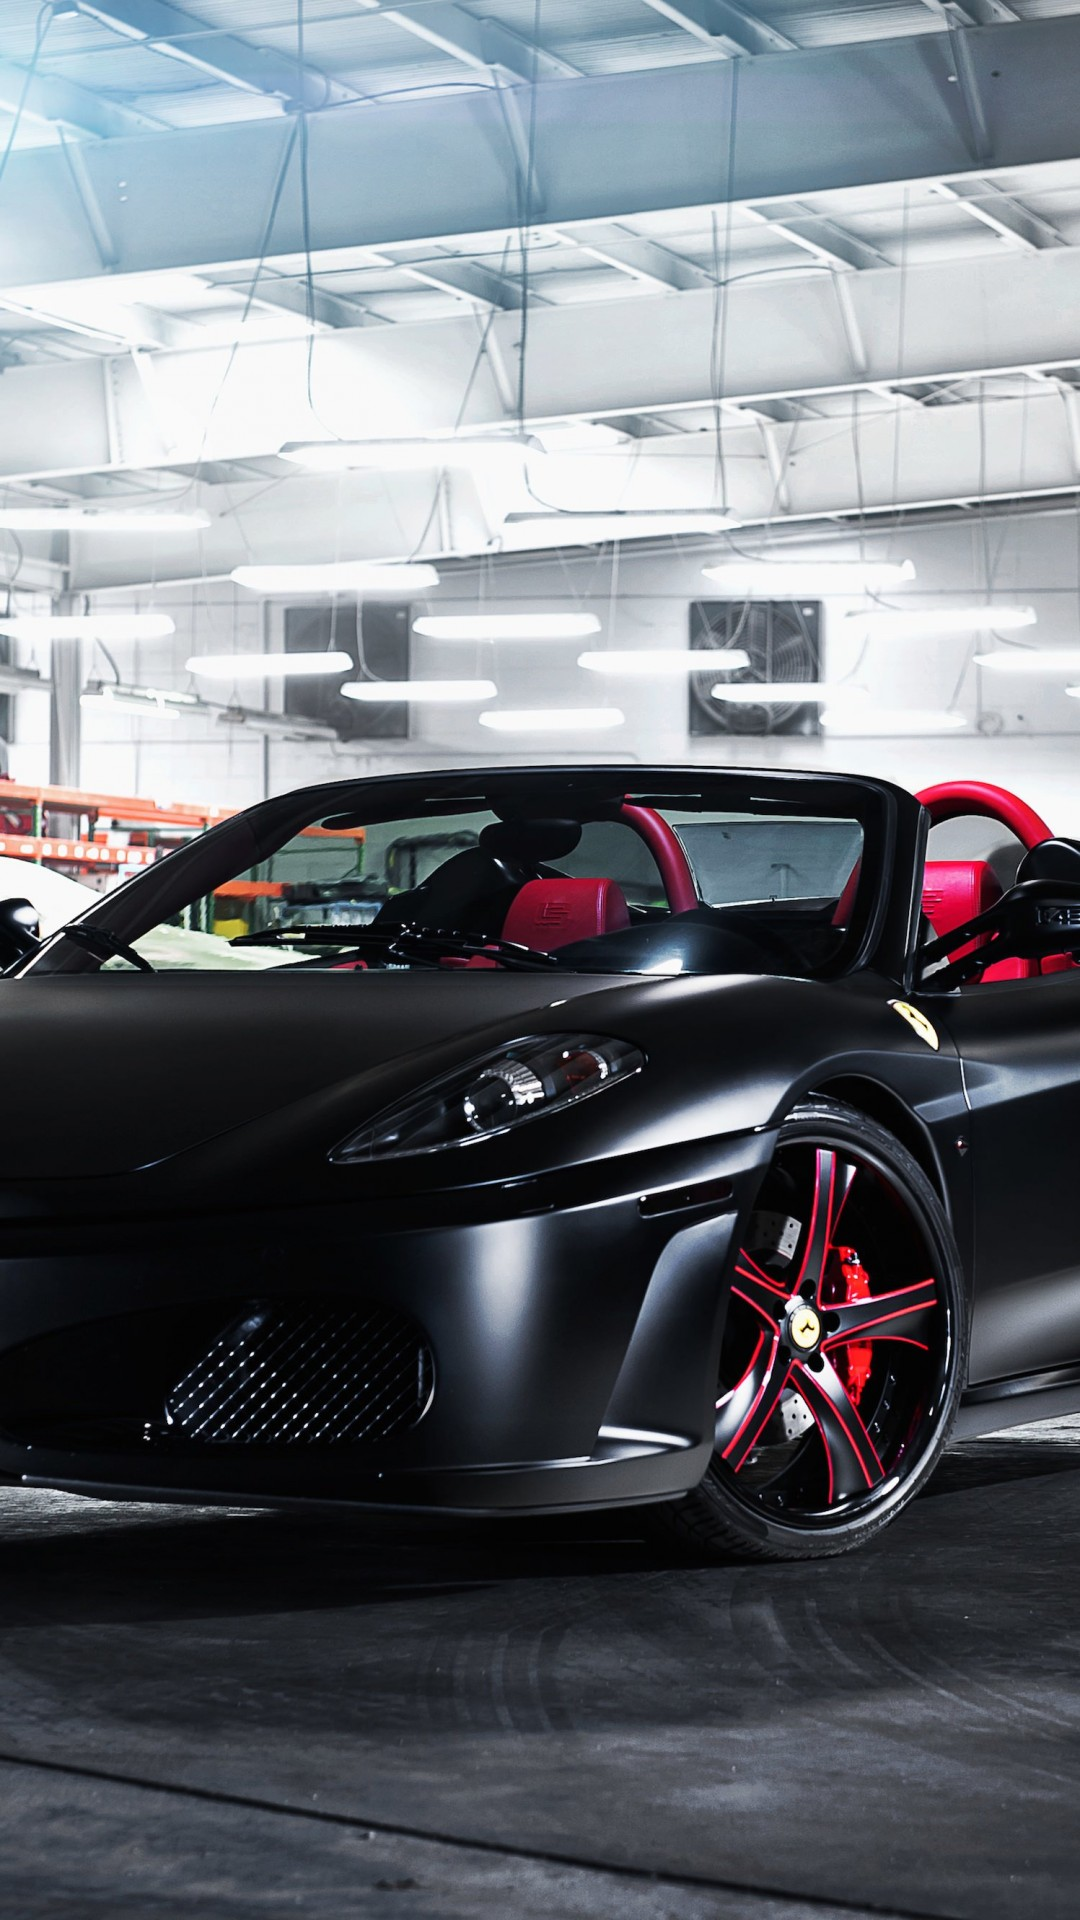 Matte Black Ferrari F430 on Savini Wheels Wallpaper for SONY Xperia Z2